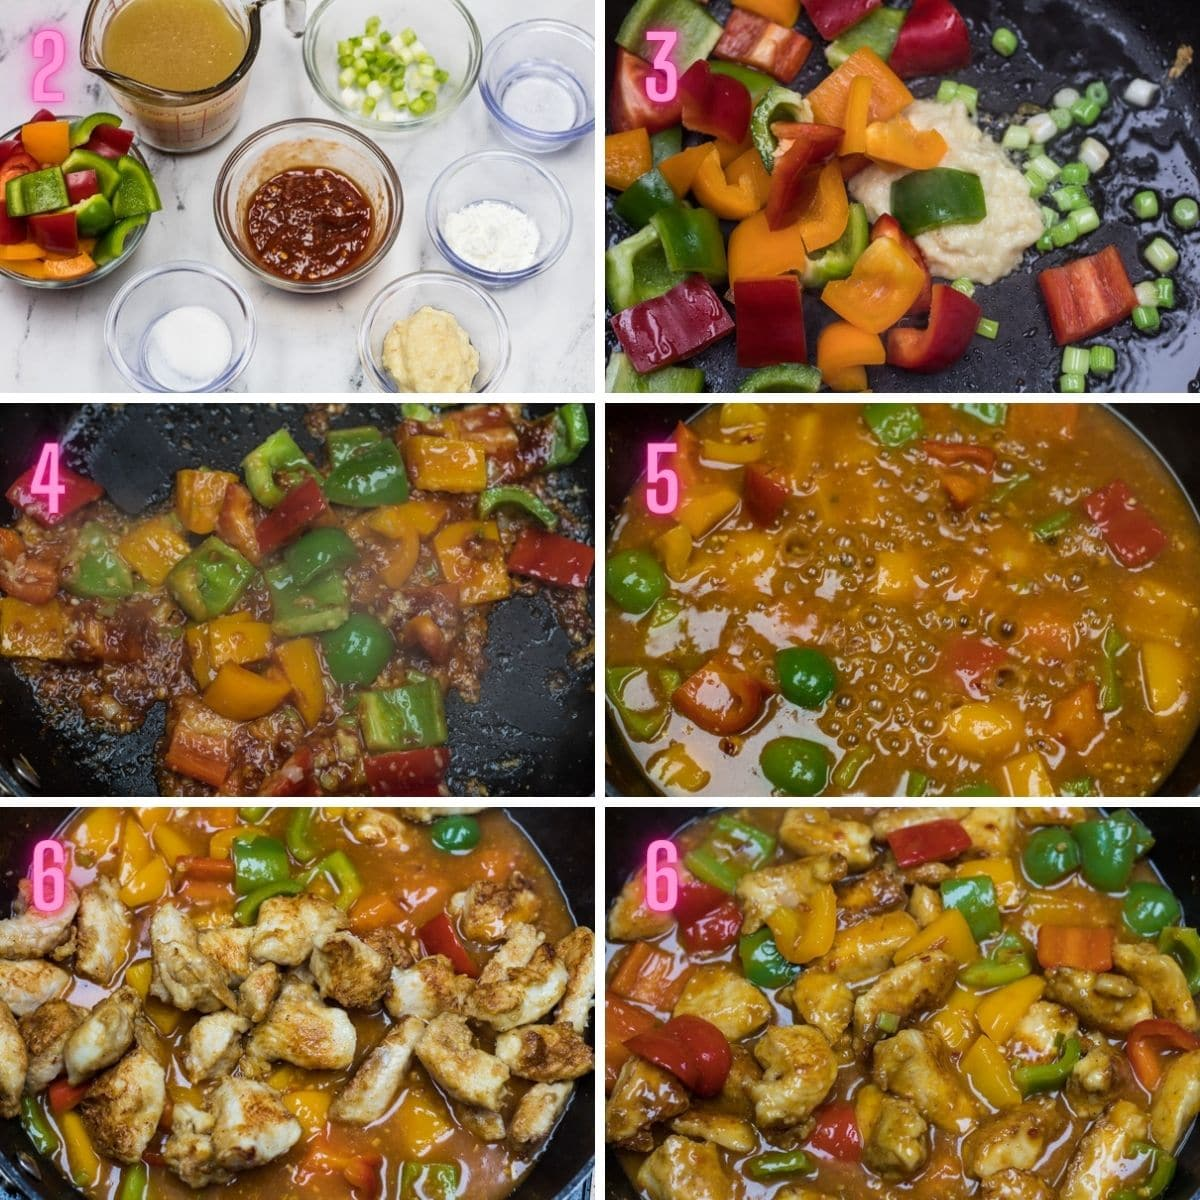 6 step by step process photos of cooking the manchurian sauce and tossing fried chicken.